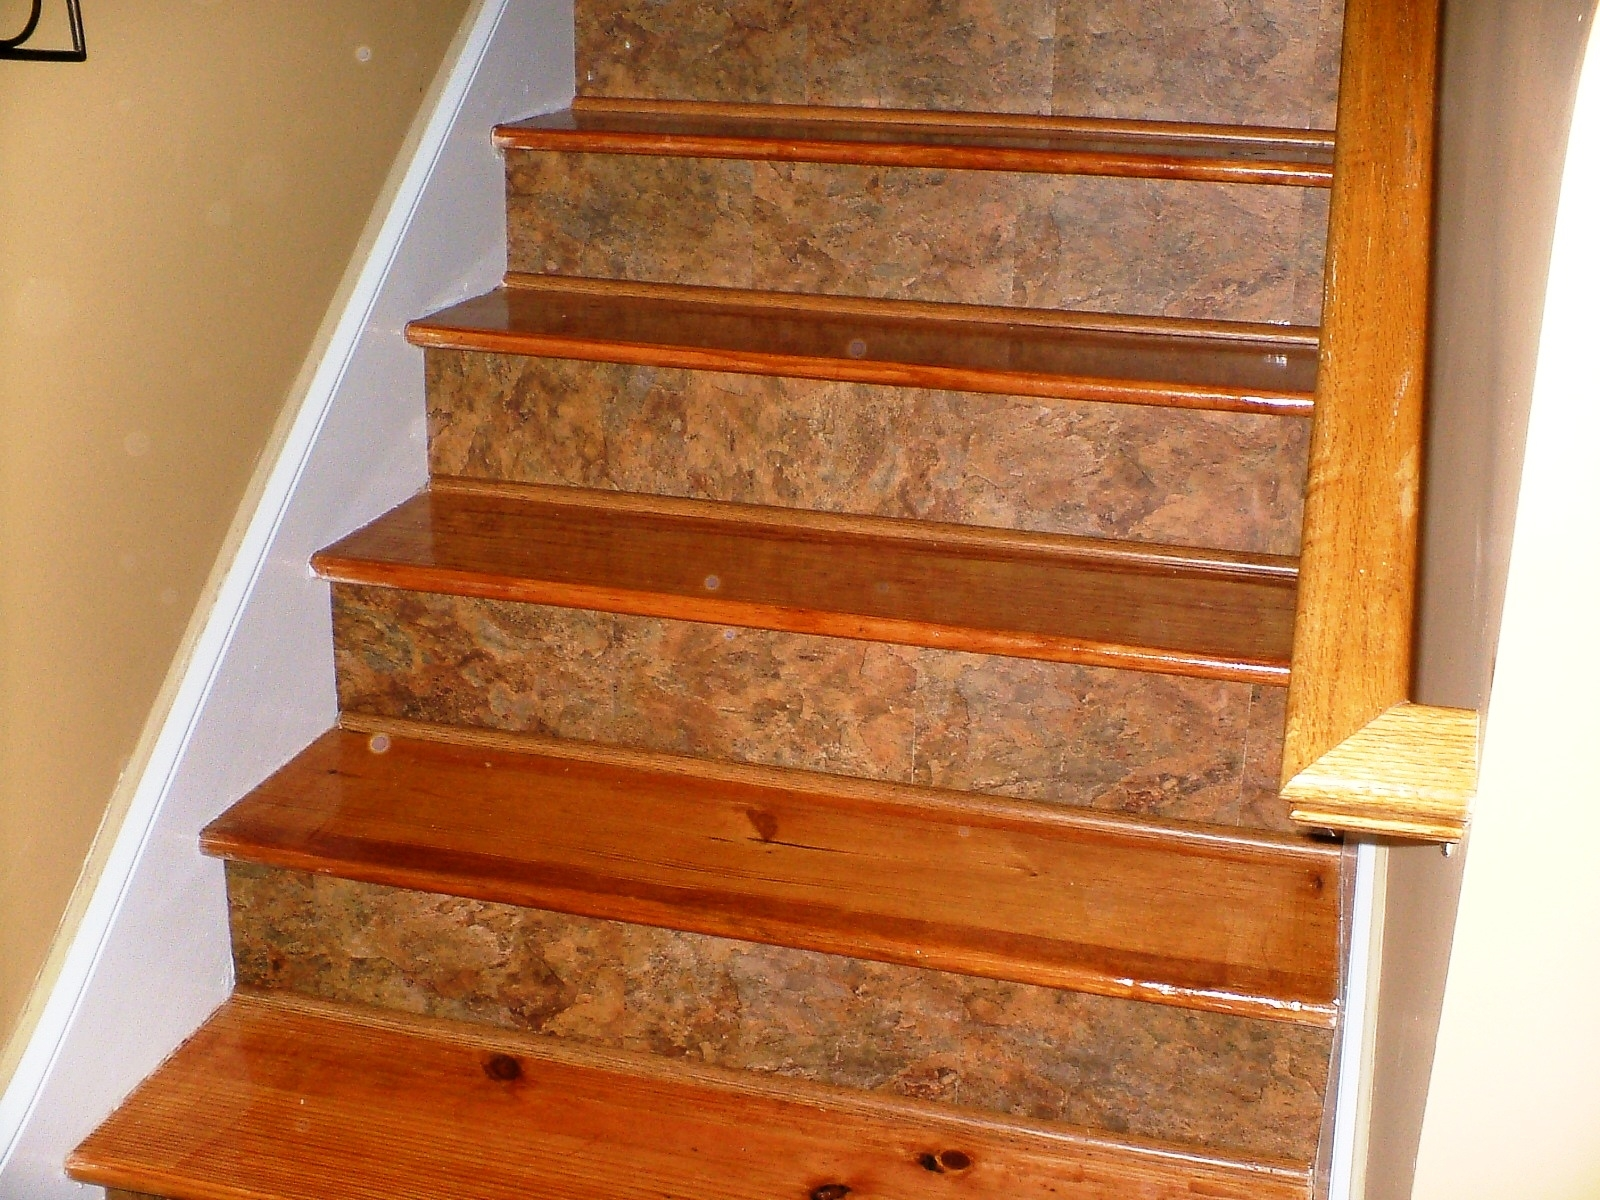 Rugs Carpet Stair Treads Rug Carpet Stair Treads Throughout Stair Tread Rug Covers (Image 8 of 15)